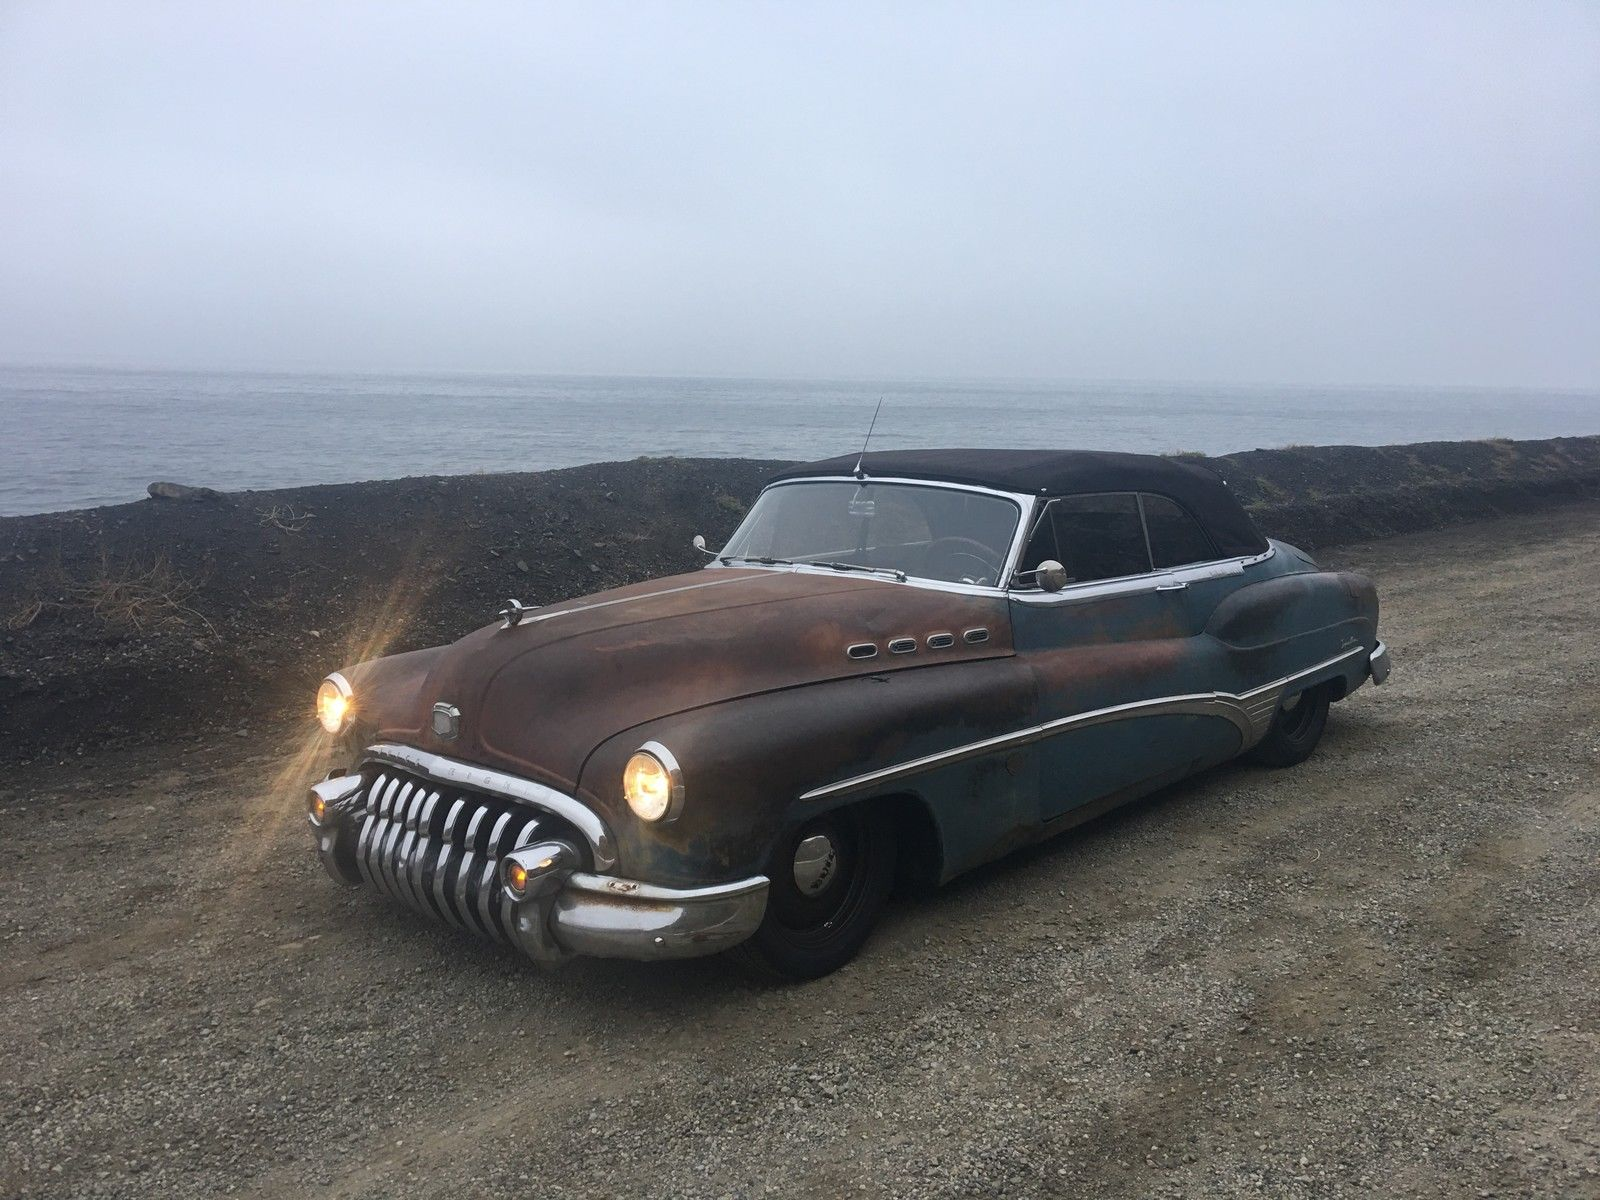 1950 Buick Roadmaster ICON Derelict 3/4 high